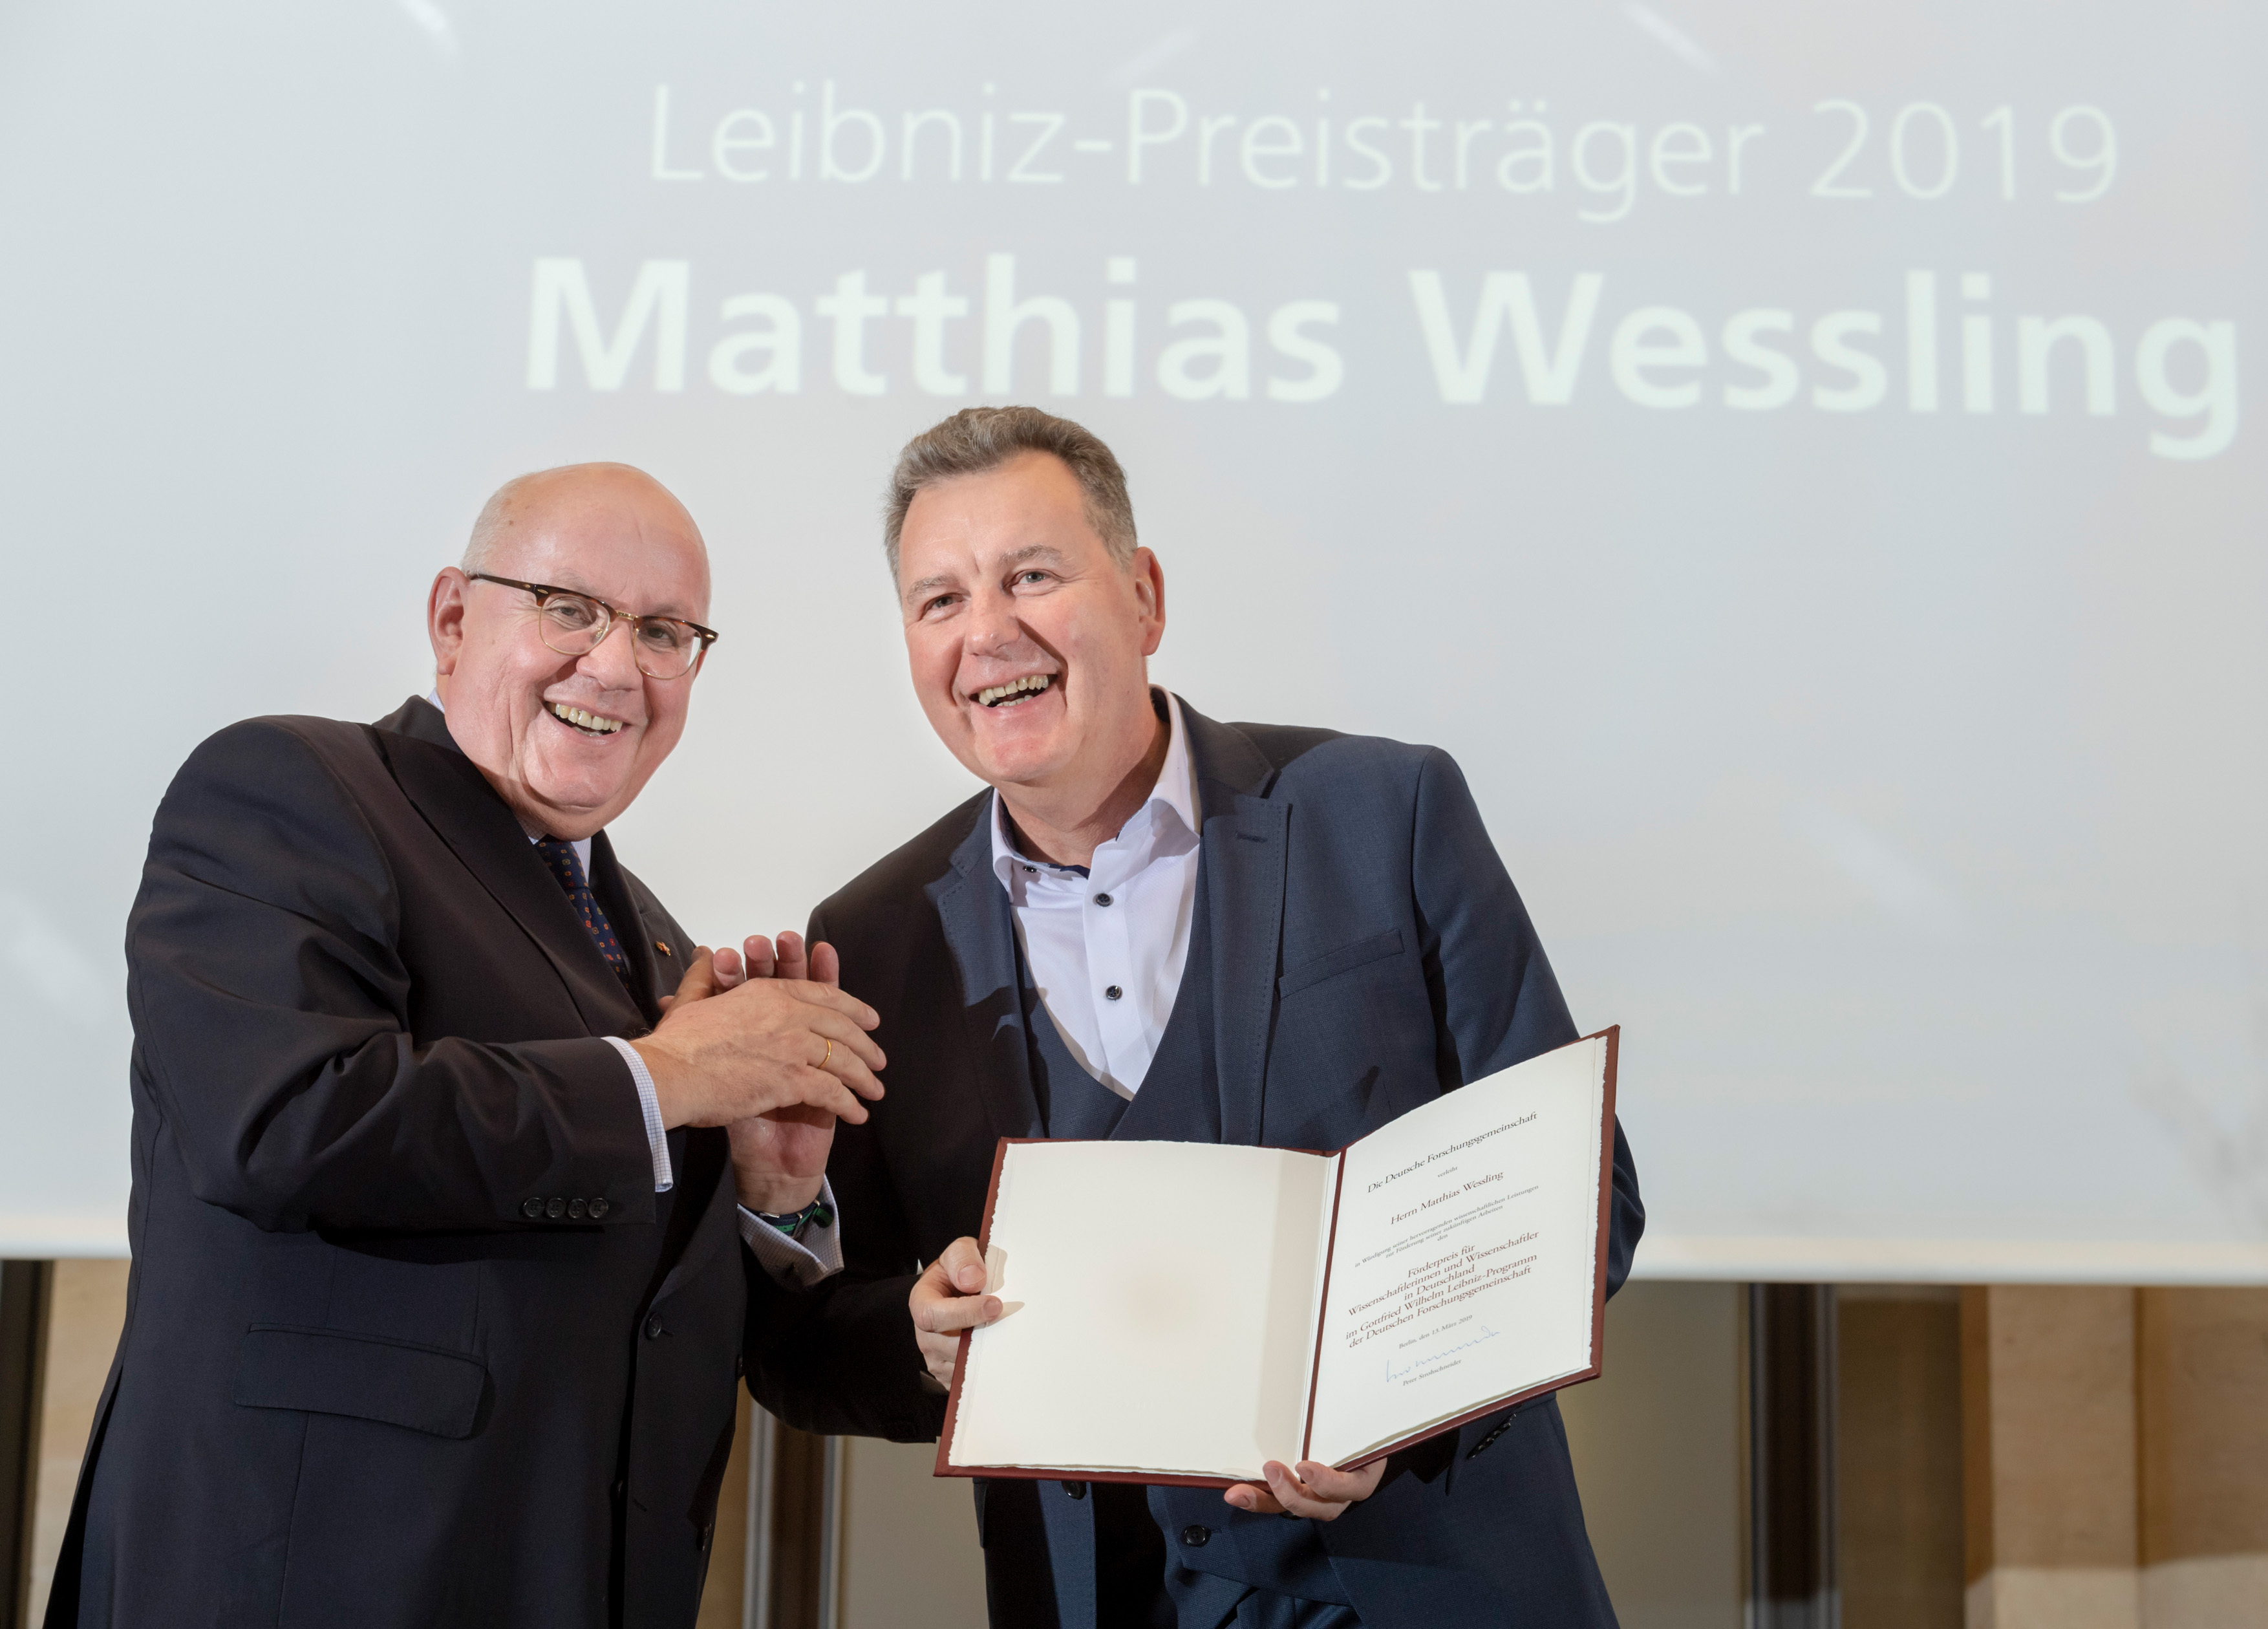 The certificate is presented to Mathias Wessling